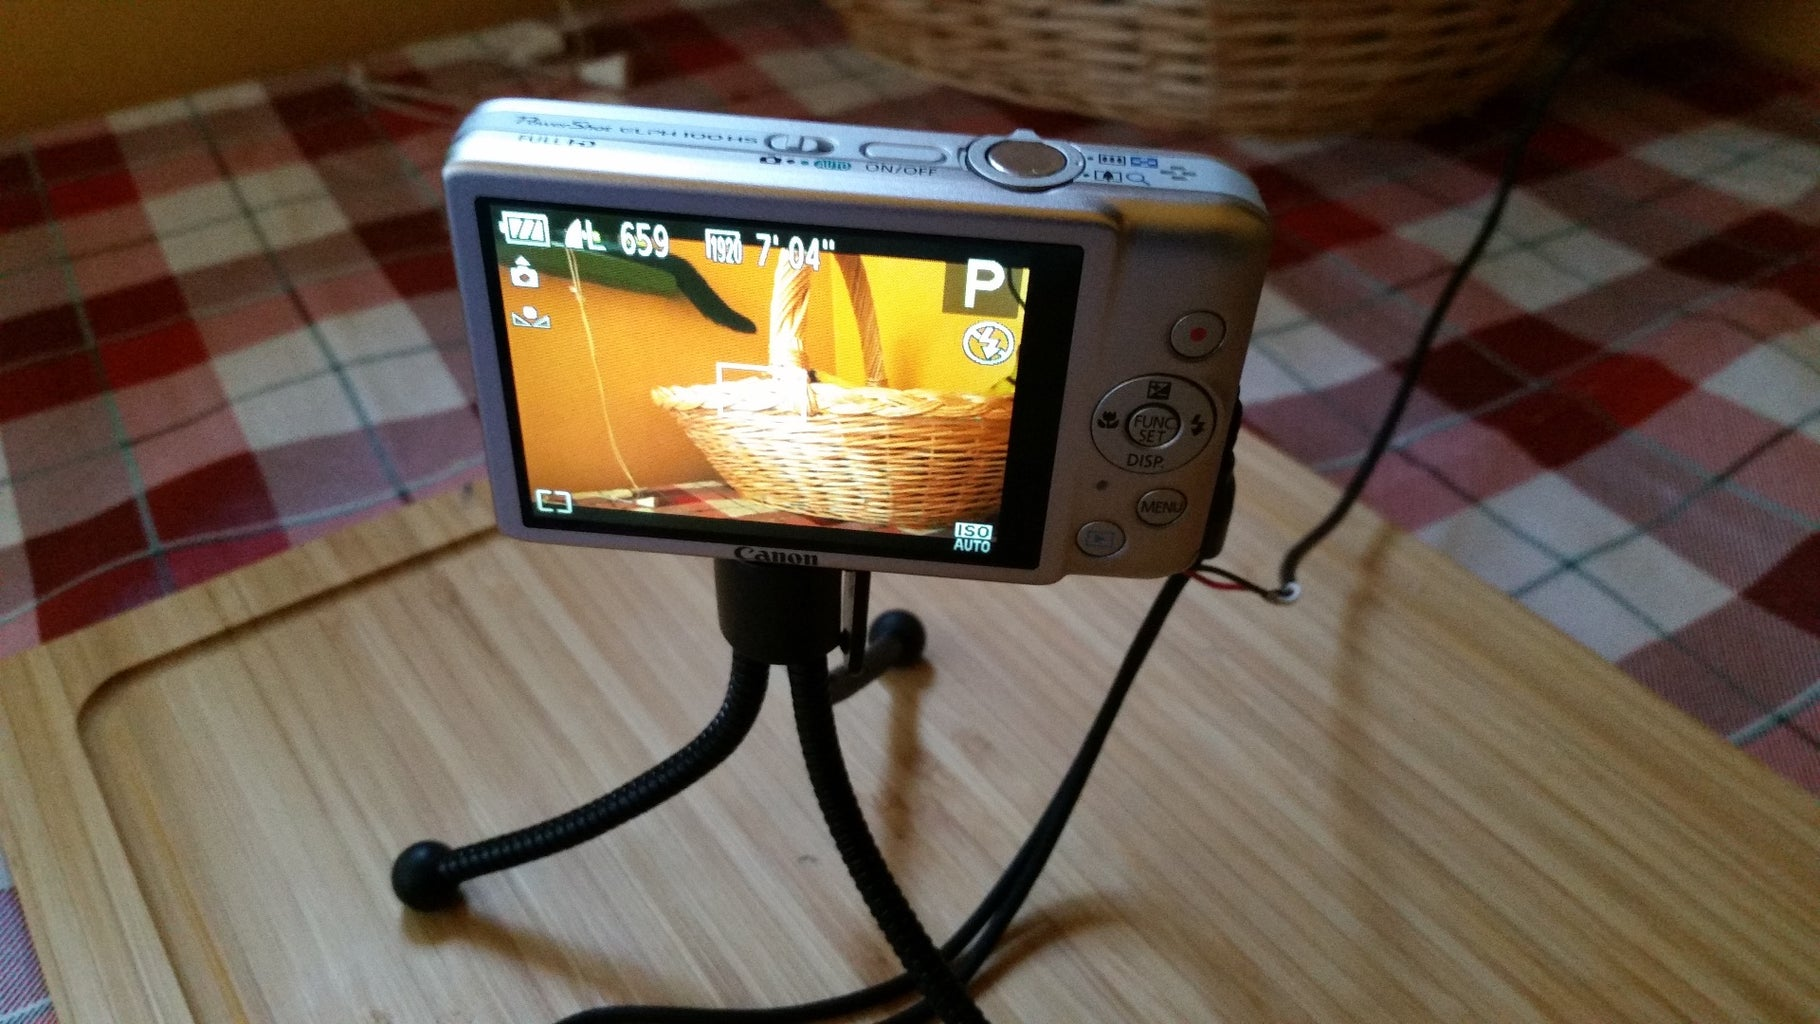 Test Your USB Powered Camera